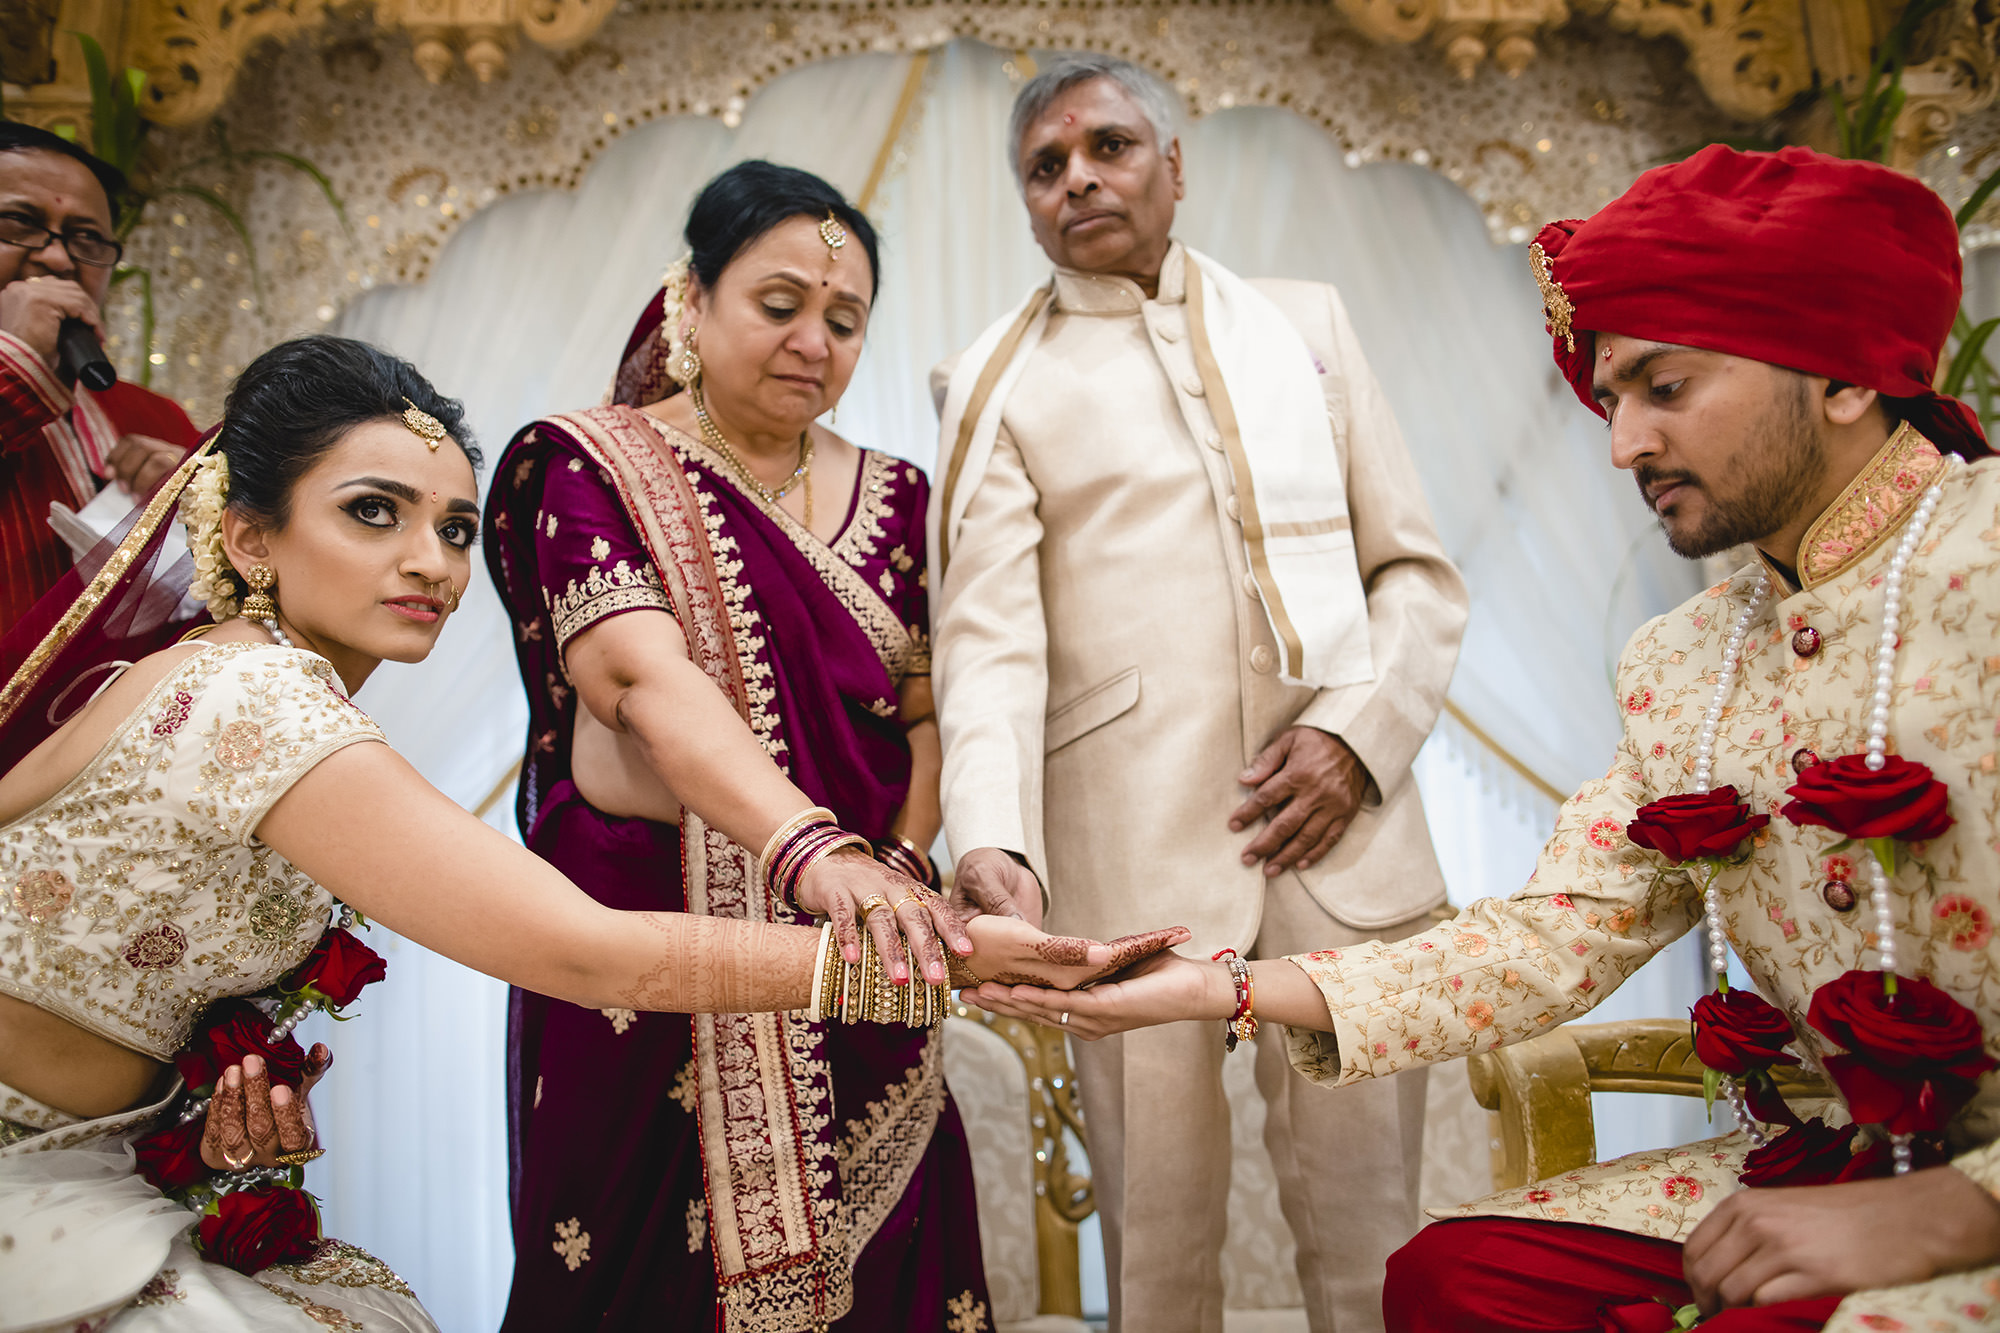 hindu wedding parents blessing bride and groom